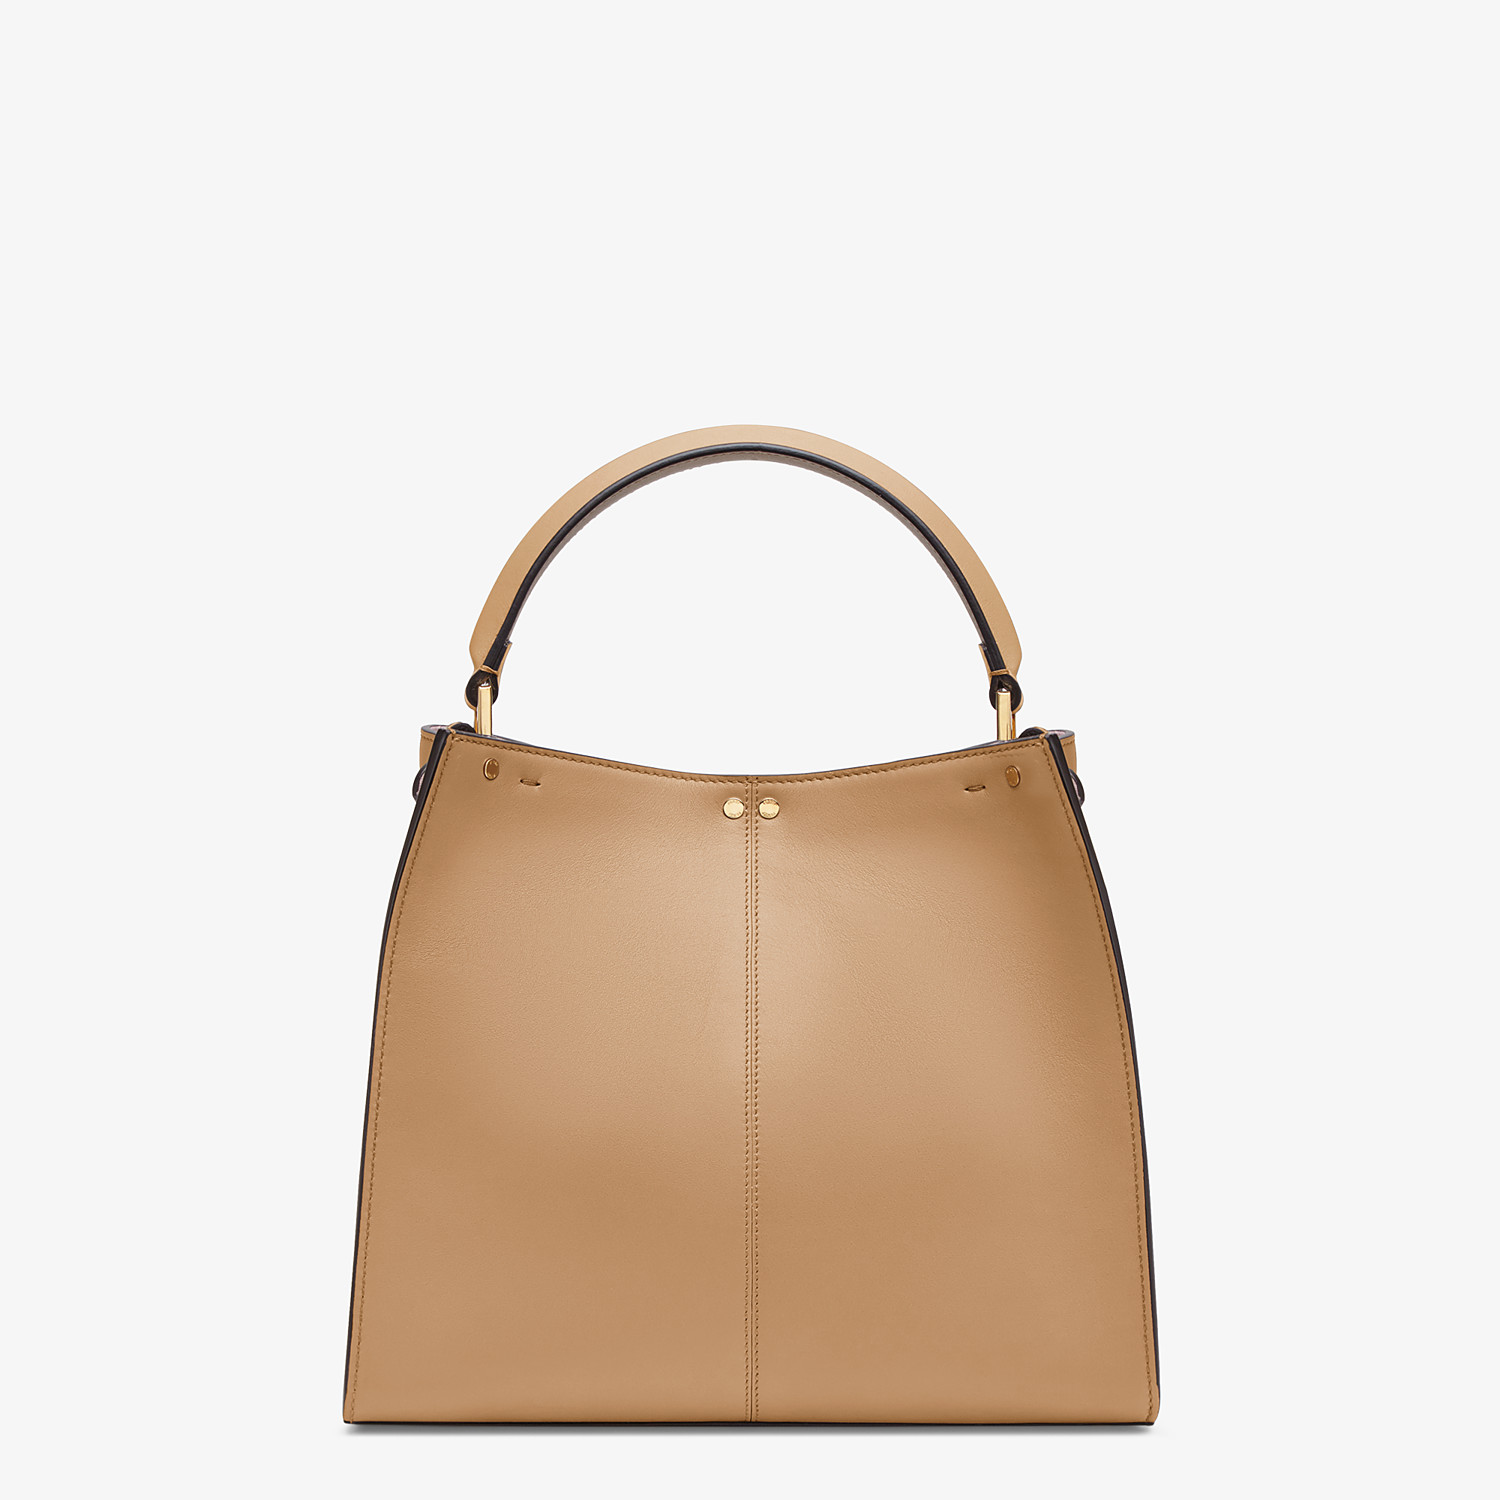 FENDI MEDIUM PEEKABOO X-LITE - Beige leather bag - view 5 detail